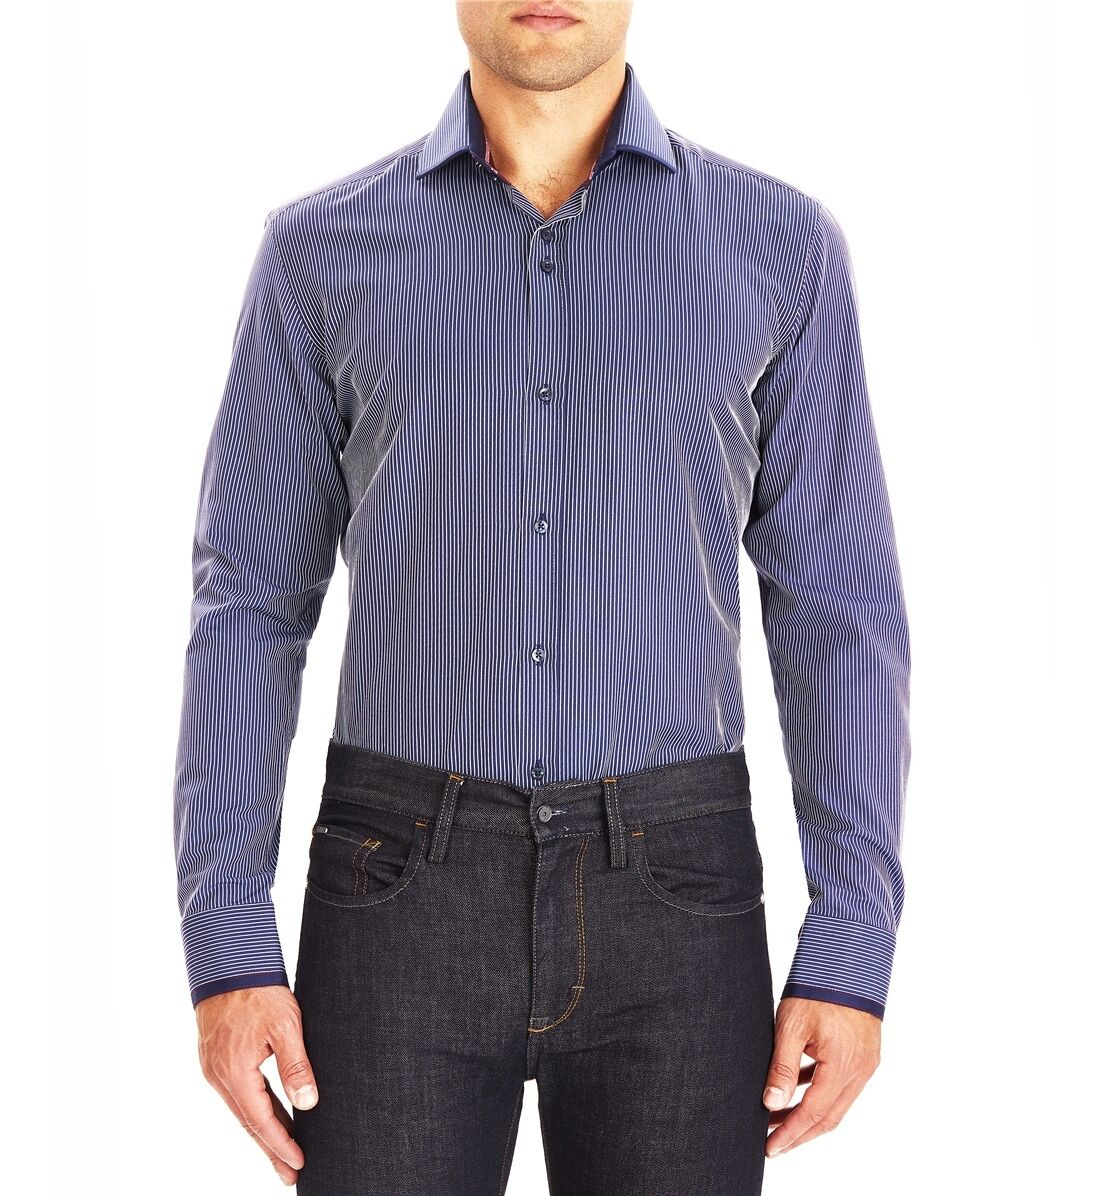 Guide London Smart Shirt Navy Blau Weiß Fine Stripe LS74069 Slim Fit Sale